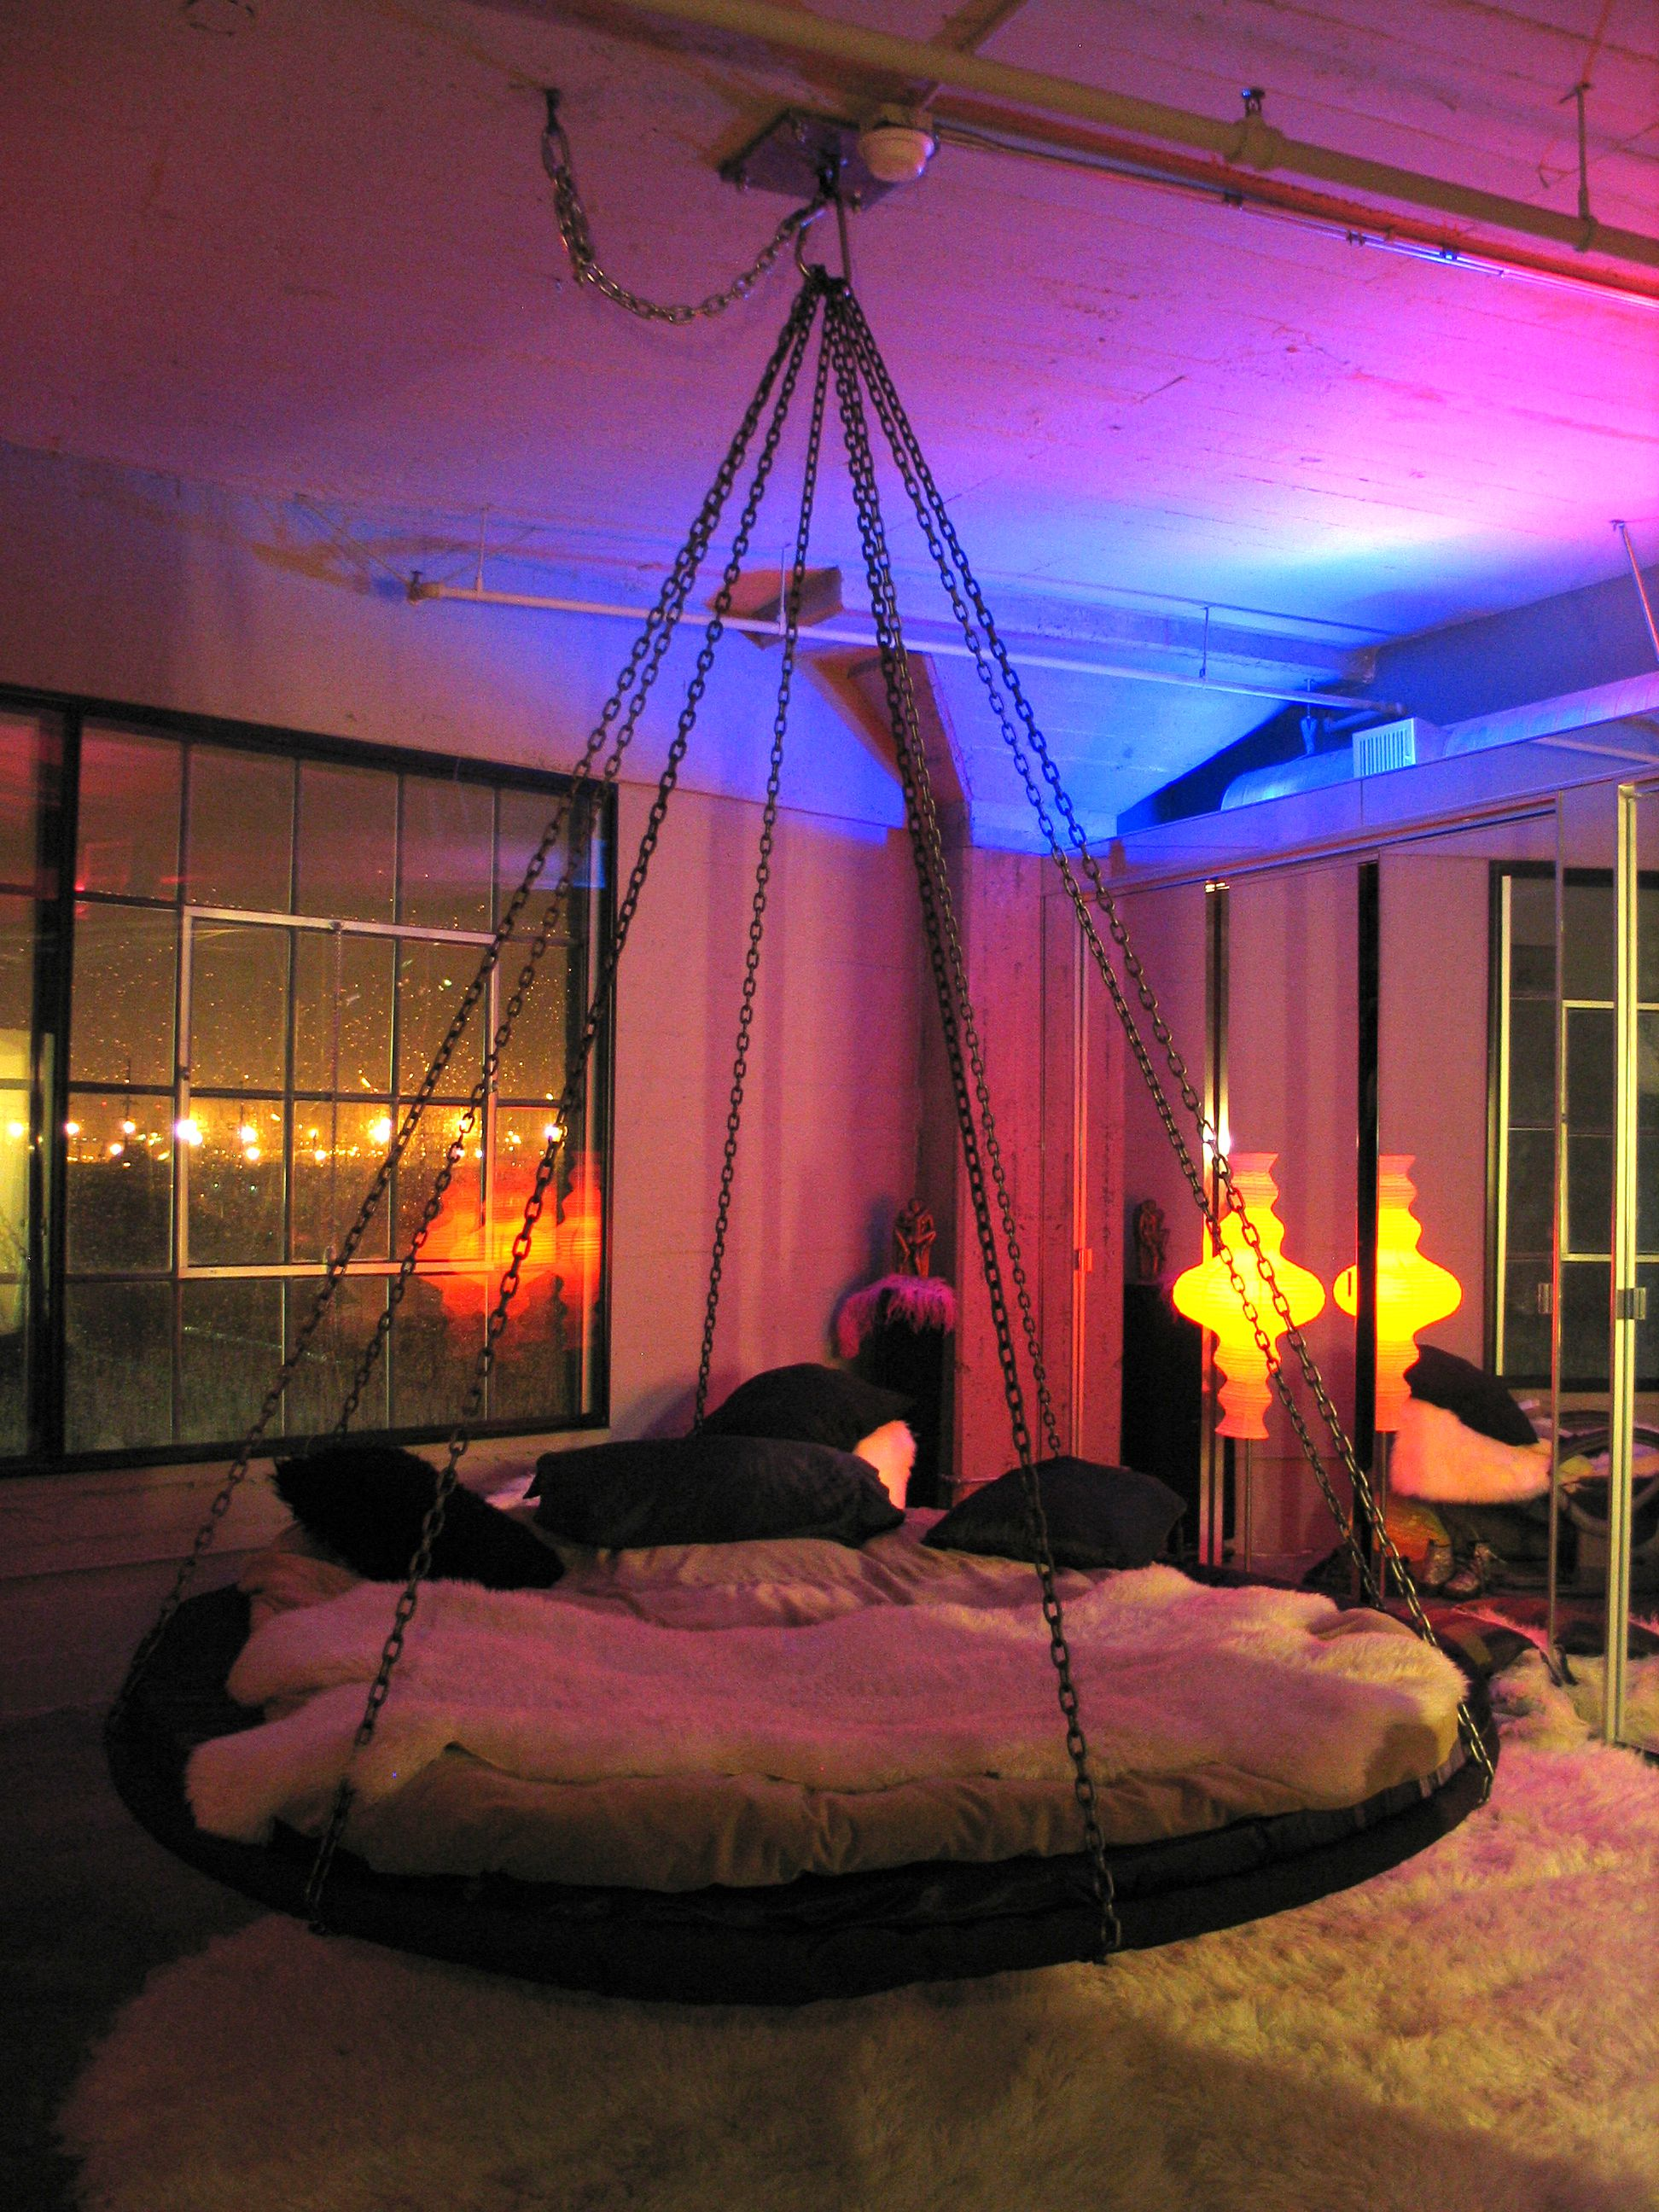 Floating Round Hanging Bed With Chains And Fabulous Lighting